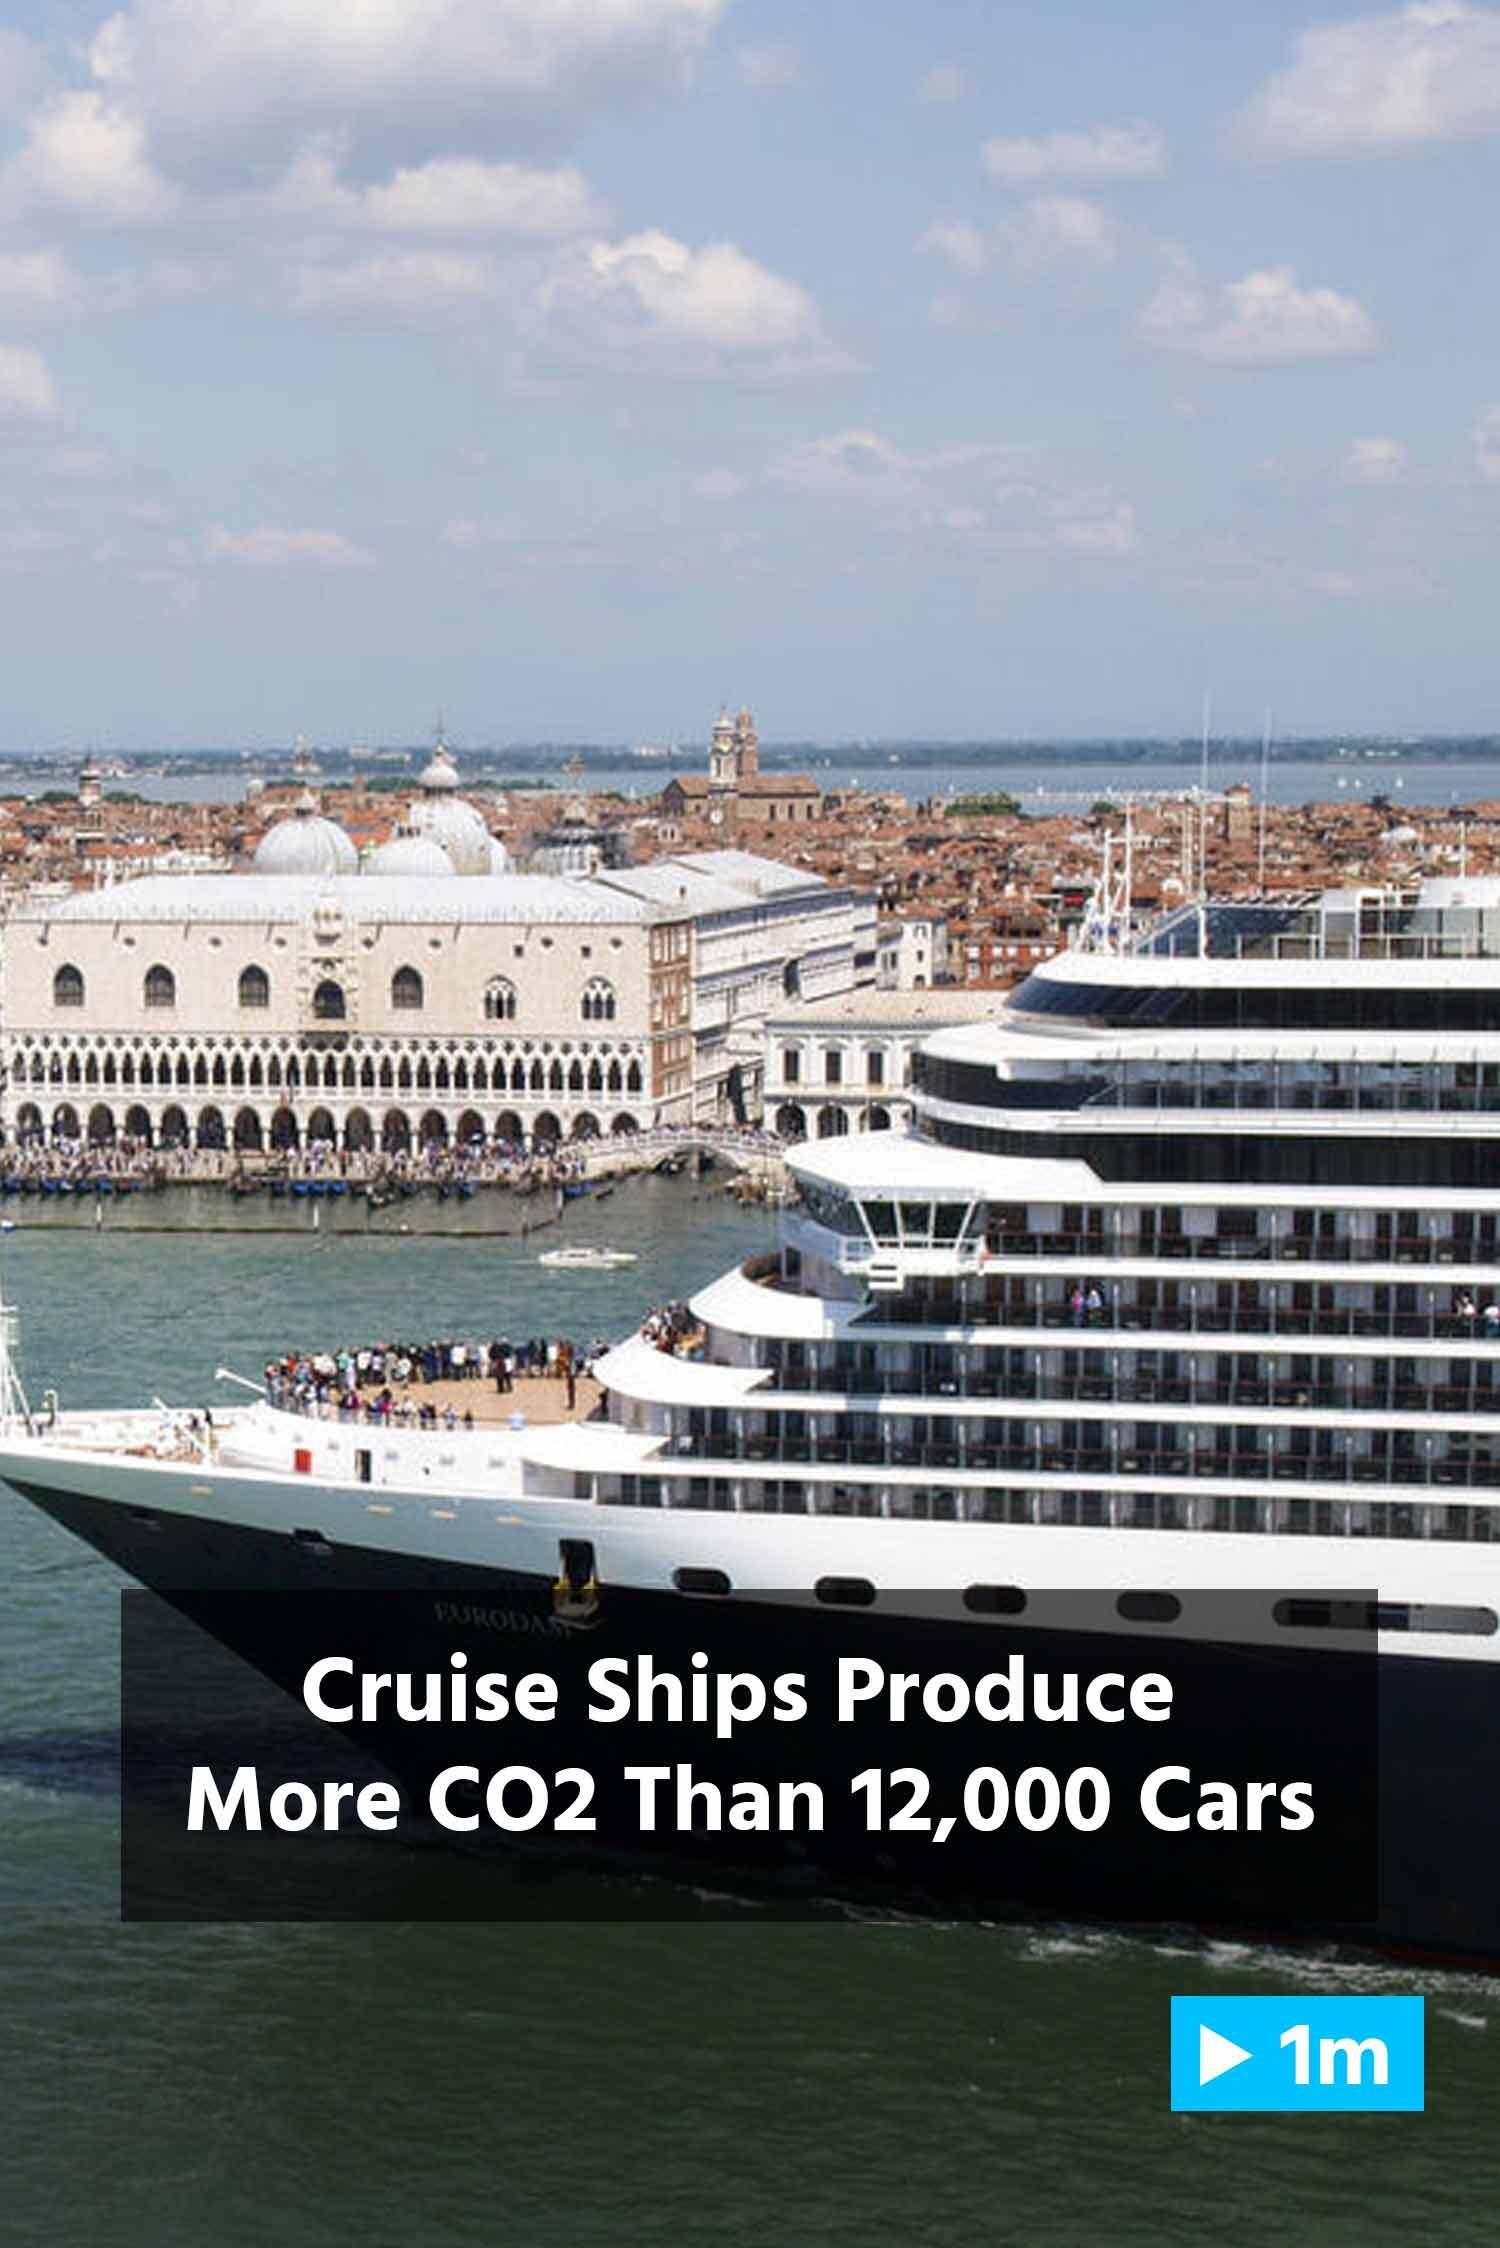 Reuters Report: Cruise Ships Produce More CO2 Than 12,000 Cars